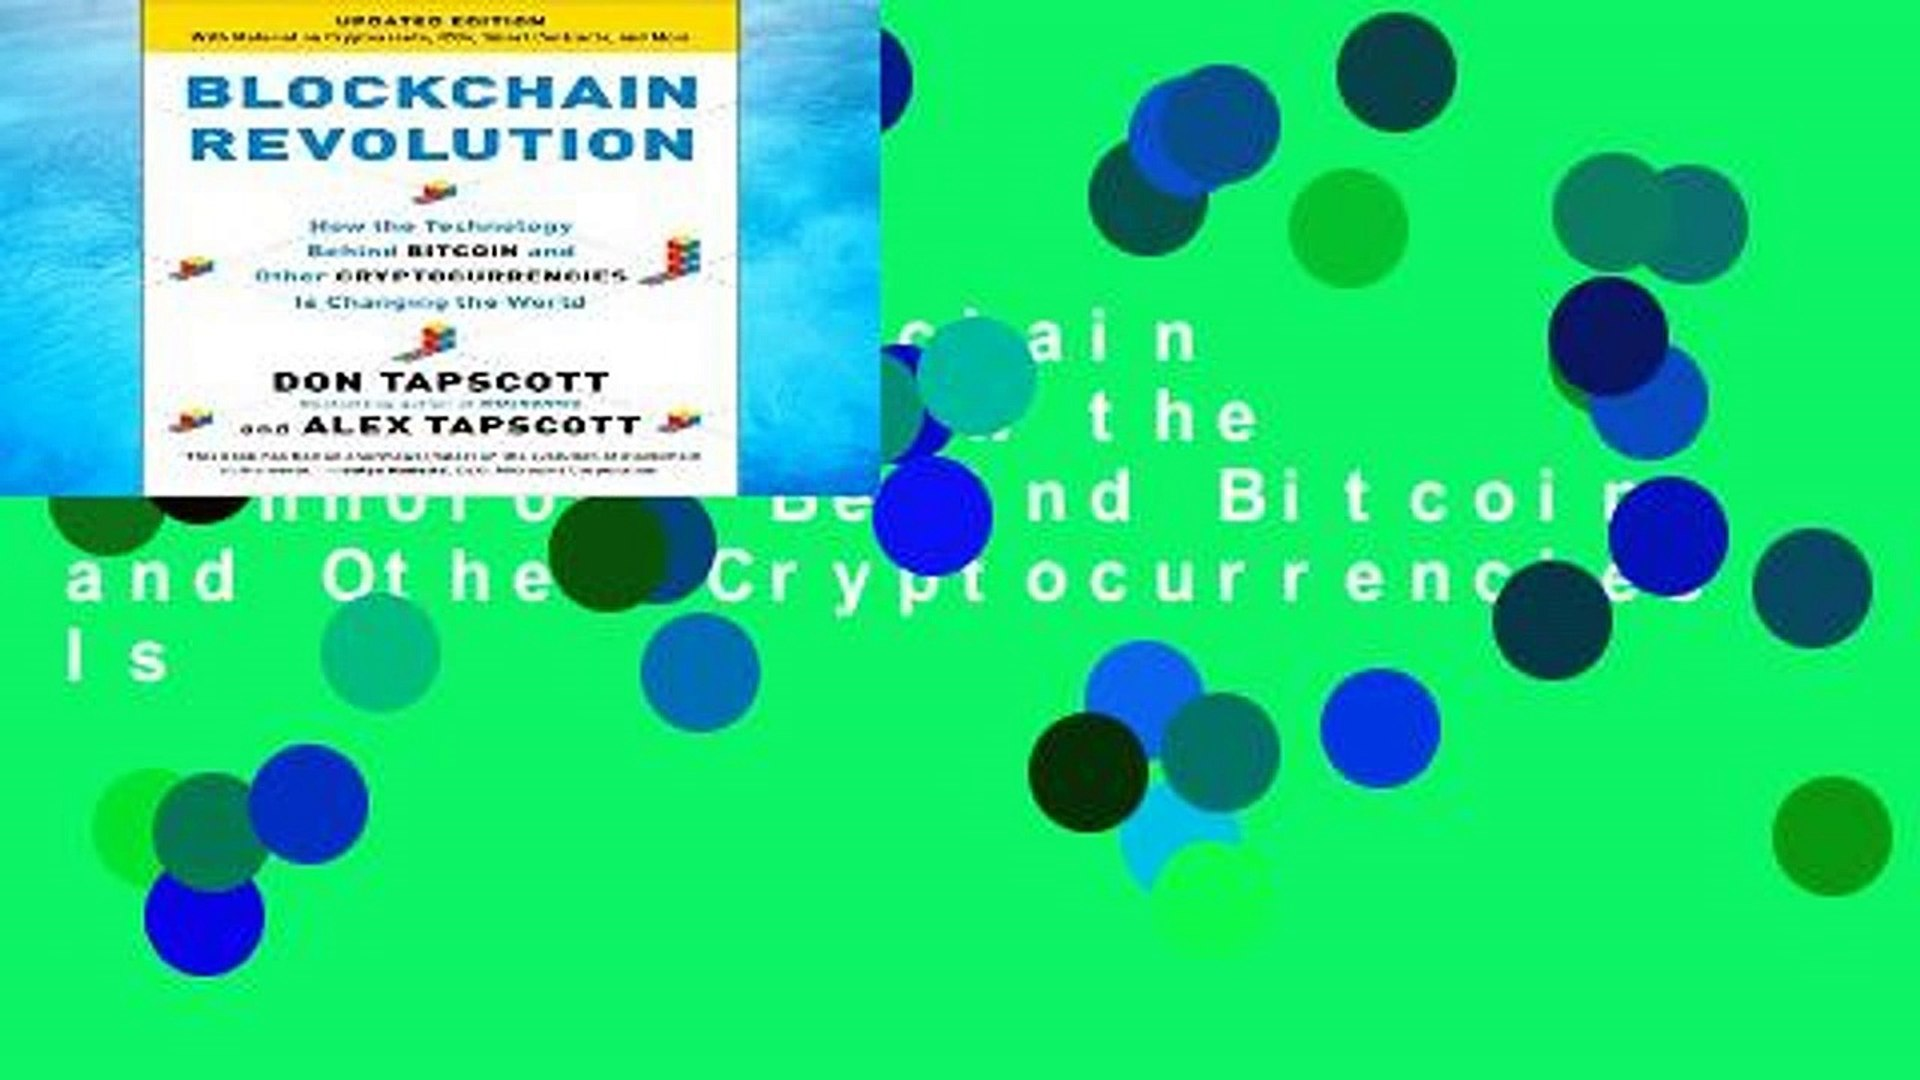 [P.D.F] Blockchain Revolution: How the Technology Behind Bitcoin and Other Cryptocurrencies Is